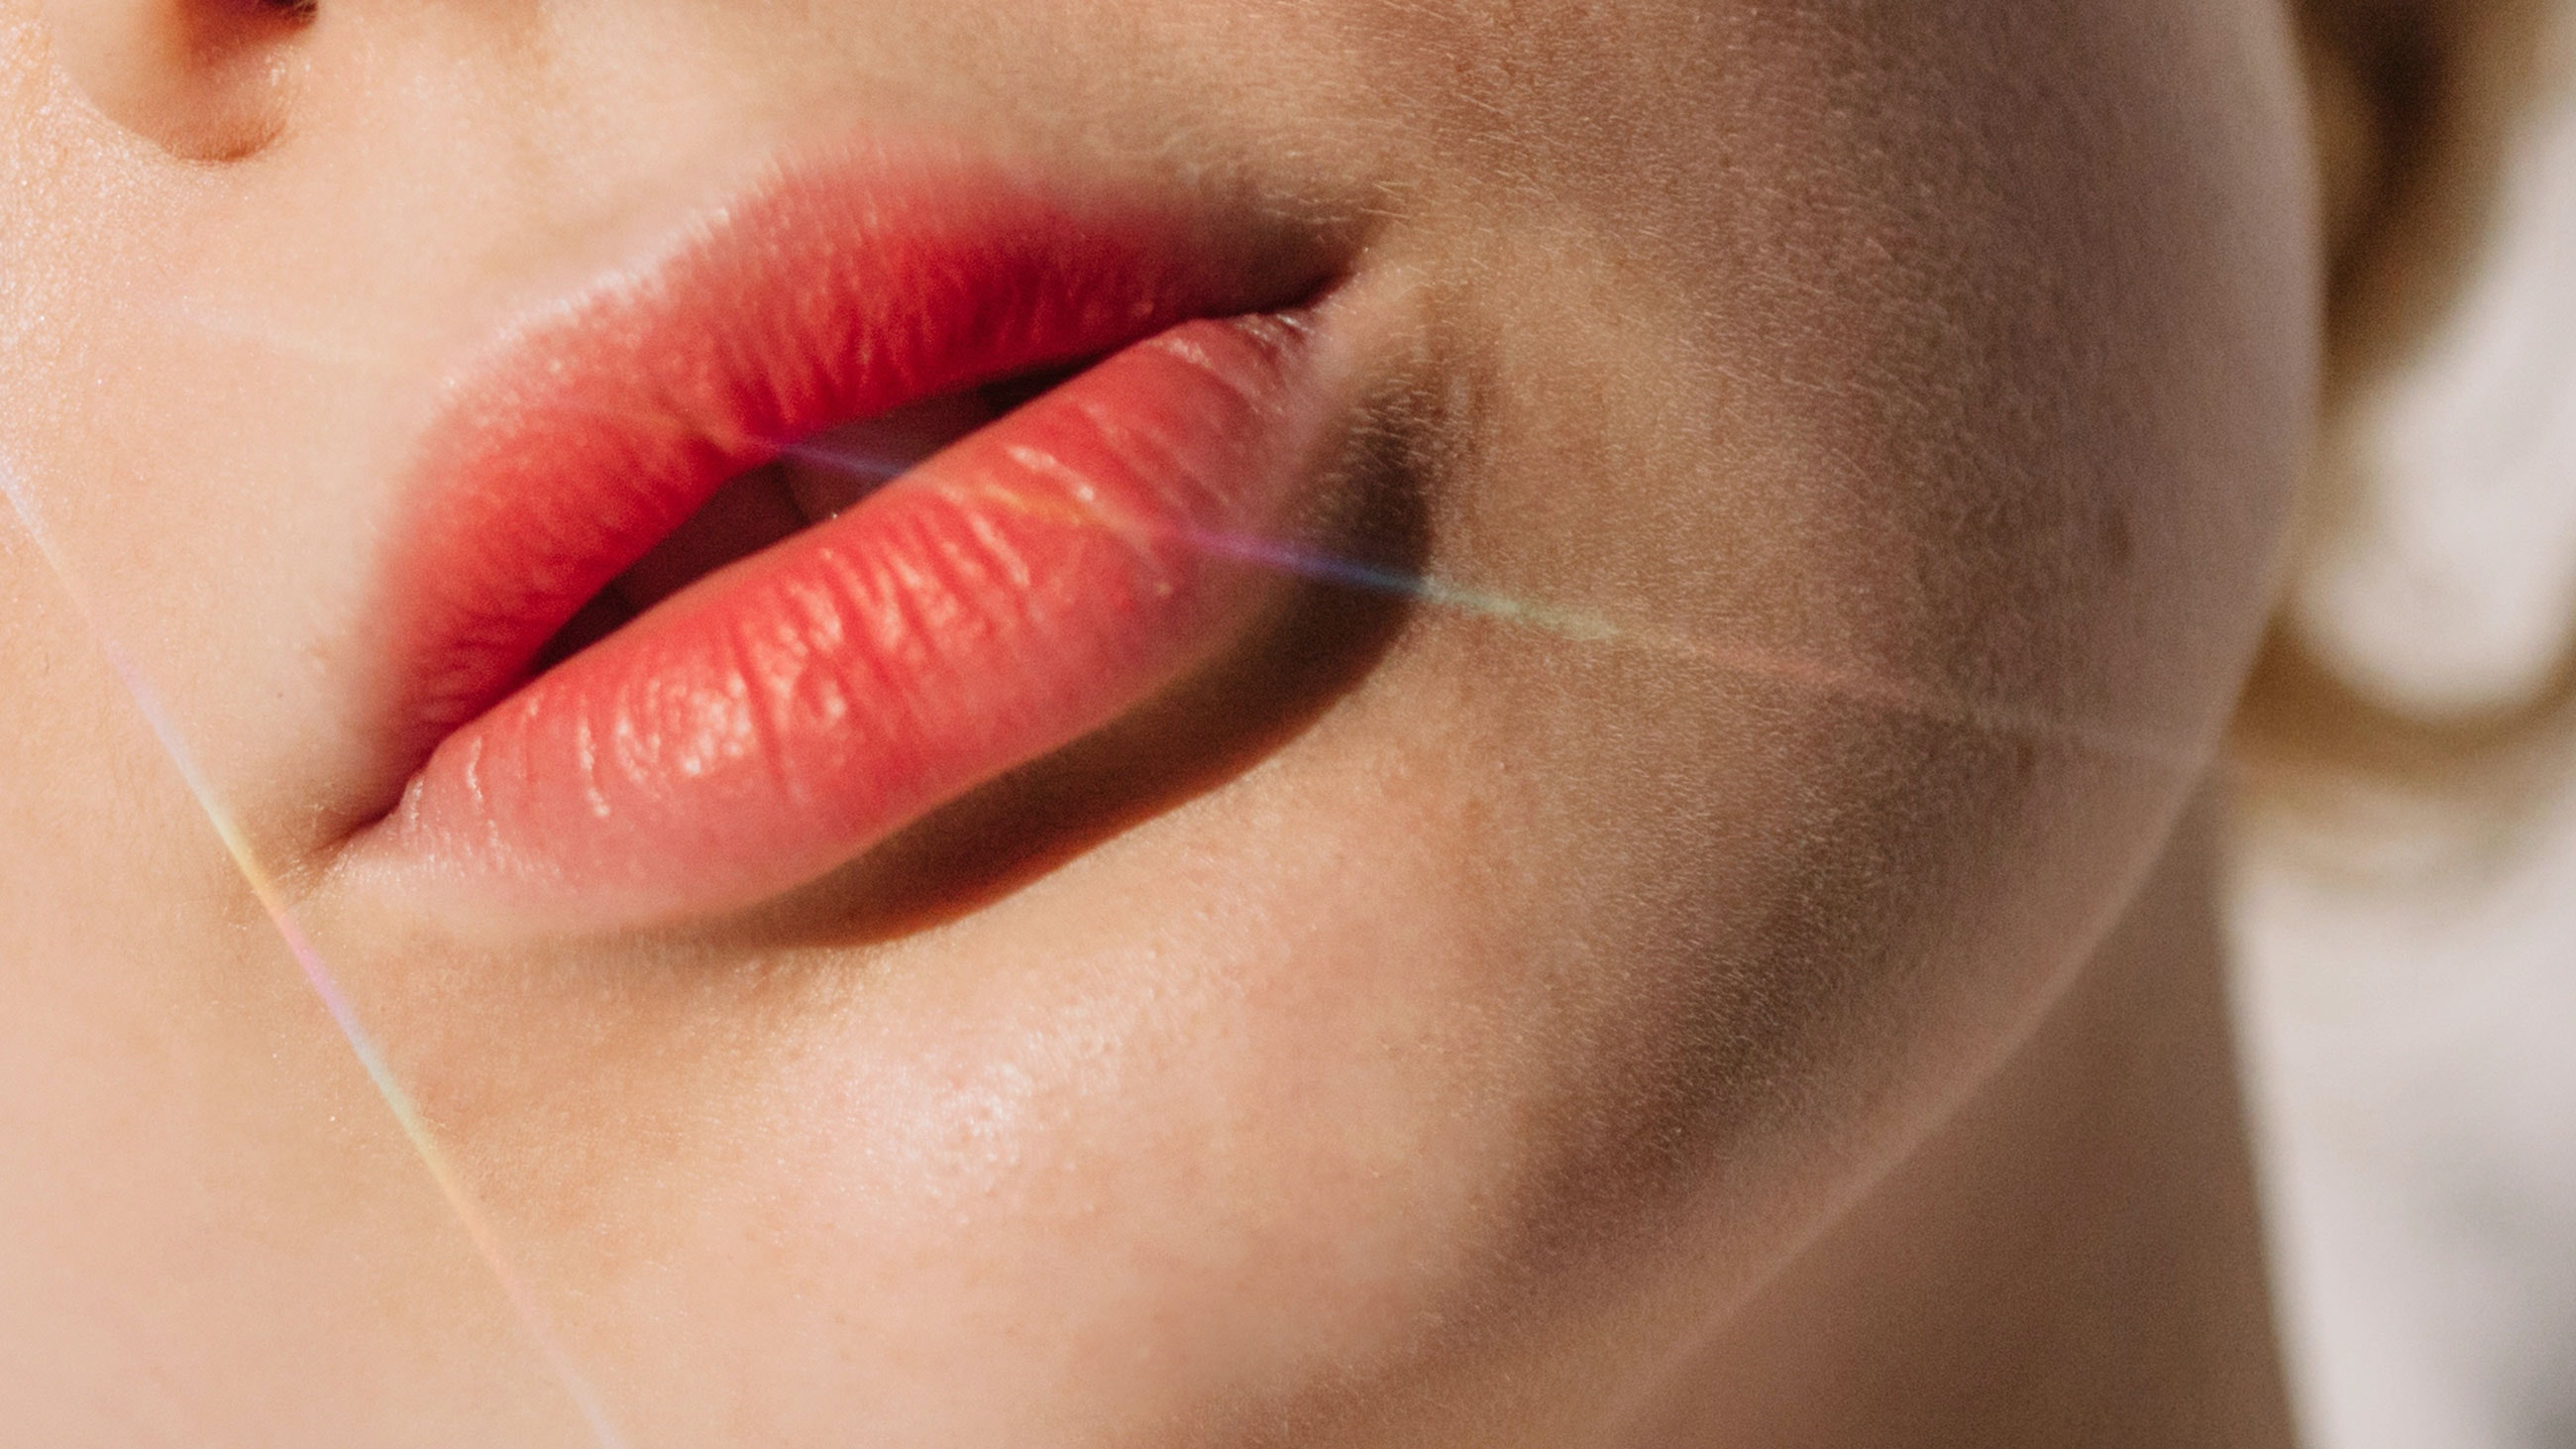 8 of the Most Common Questions About Lip Injections, Answered